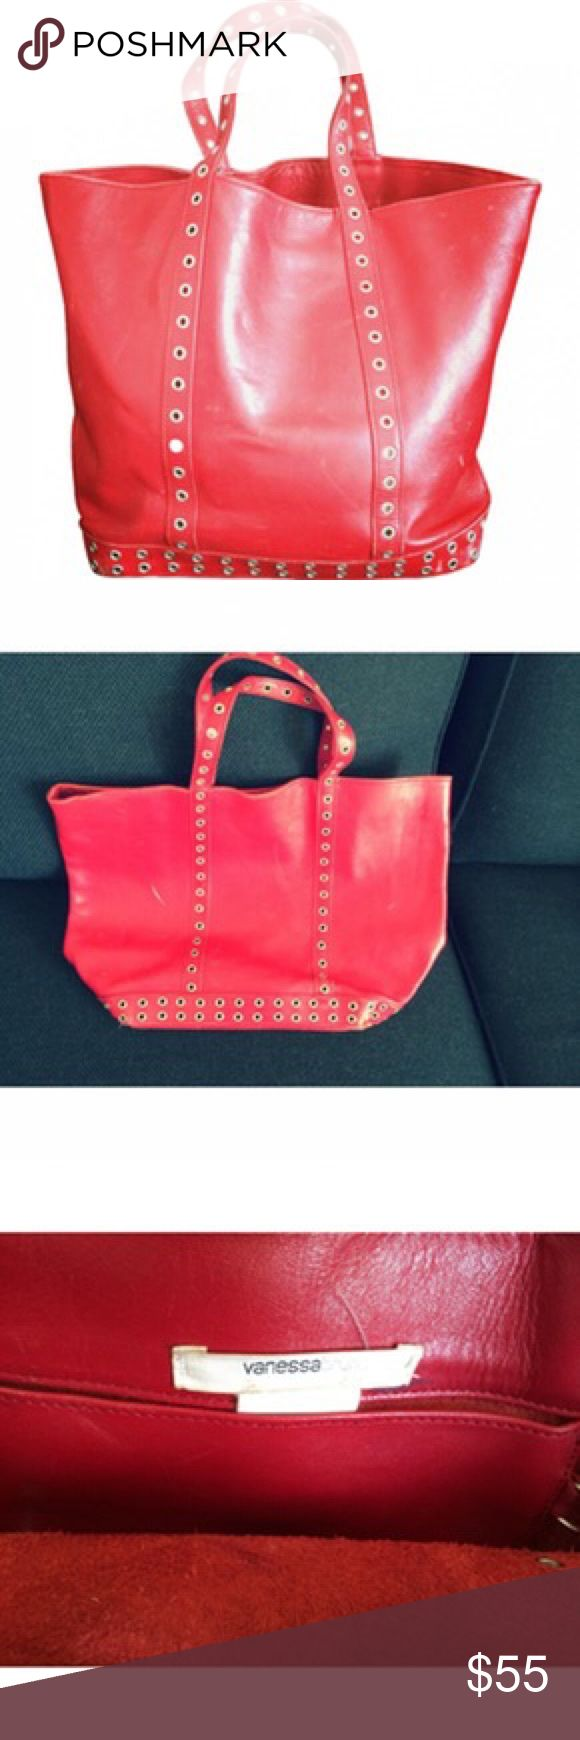 Vanessa Bruno RED BAG Nice Red Leather Bag from French Designer VANESSA BRUNO. The bag shows some light white traces of wear, for this reason accepting offers Vanessa Bruno Bags Totes